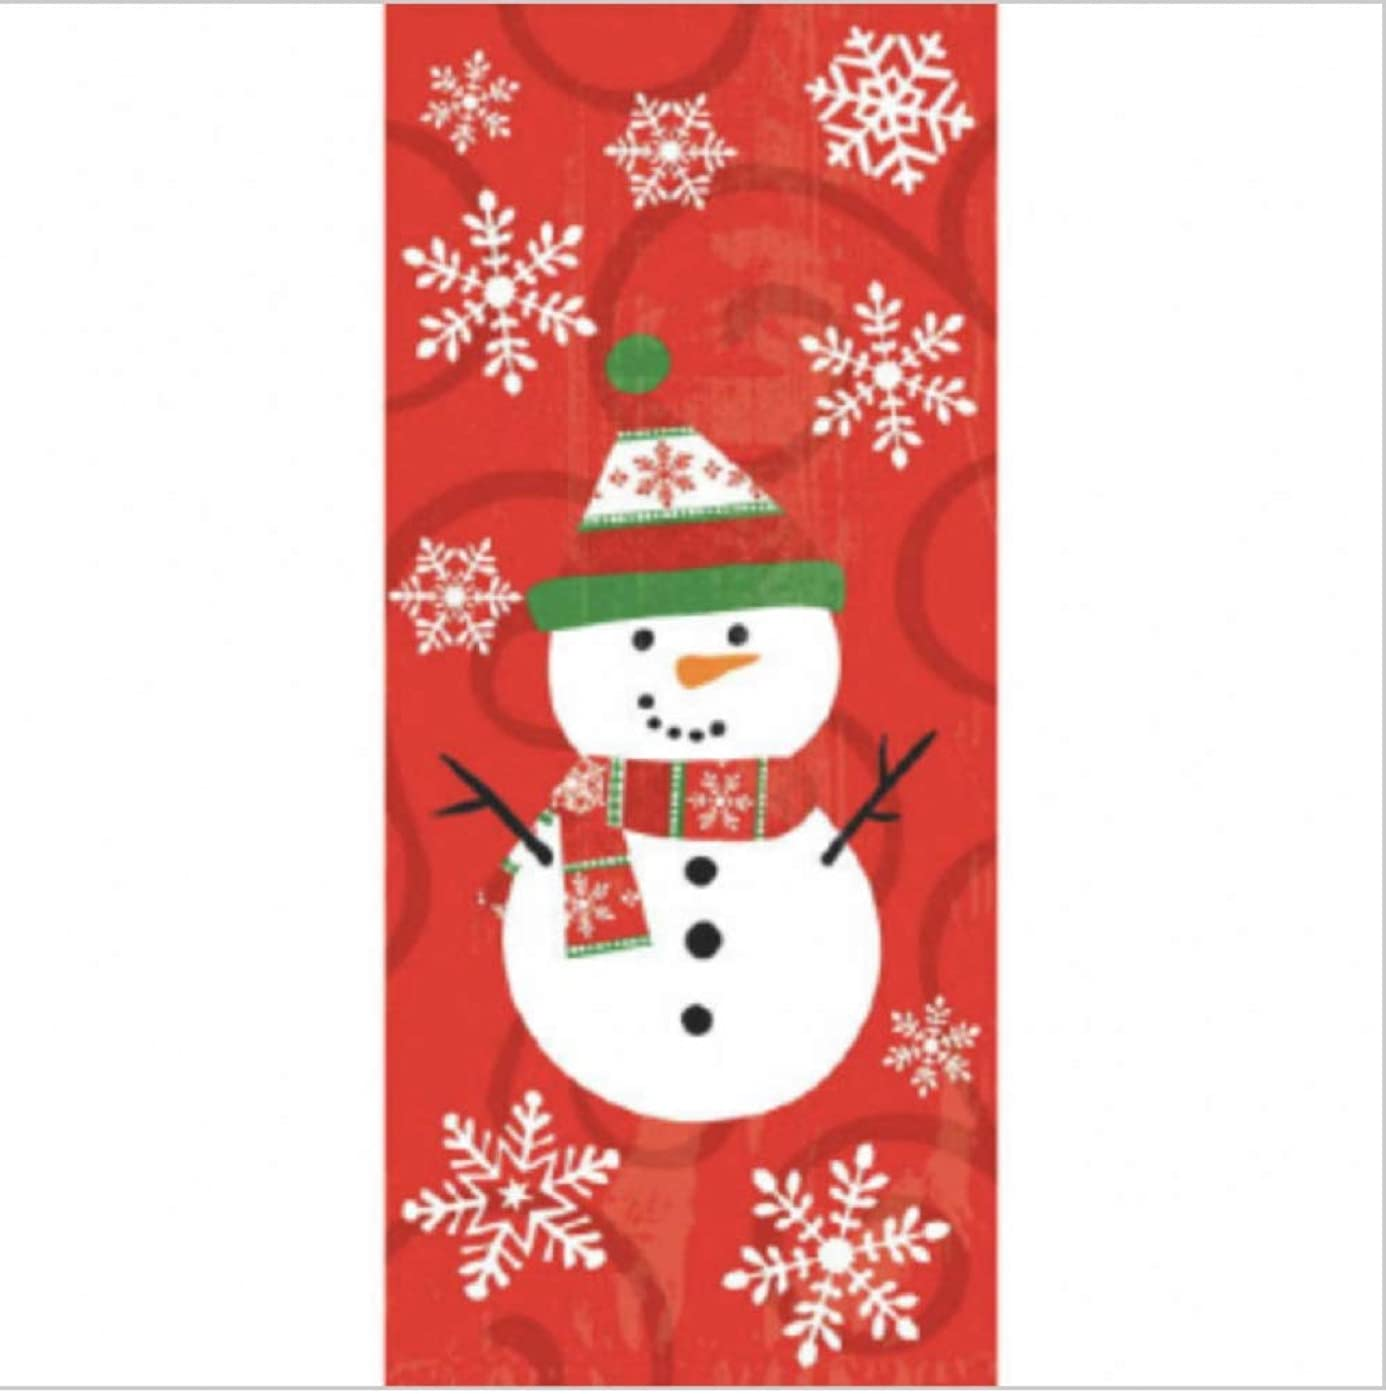 Snowman Cello Bags Set (20 Large and 20 Small)